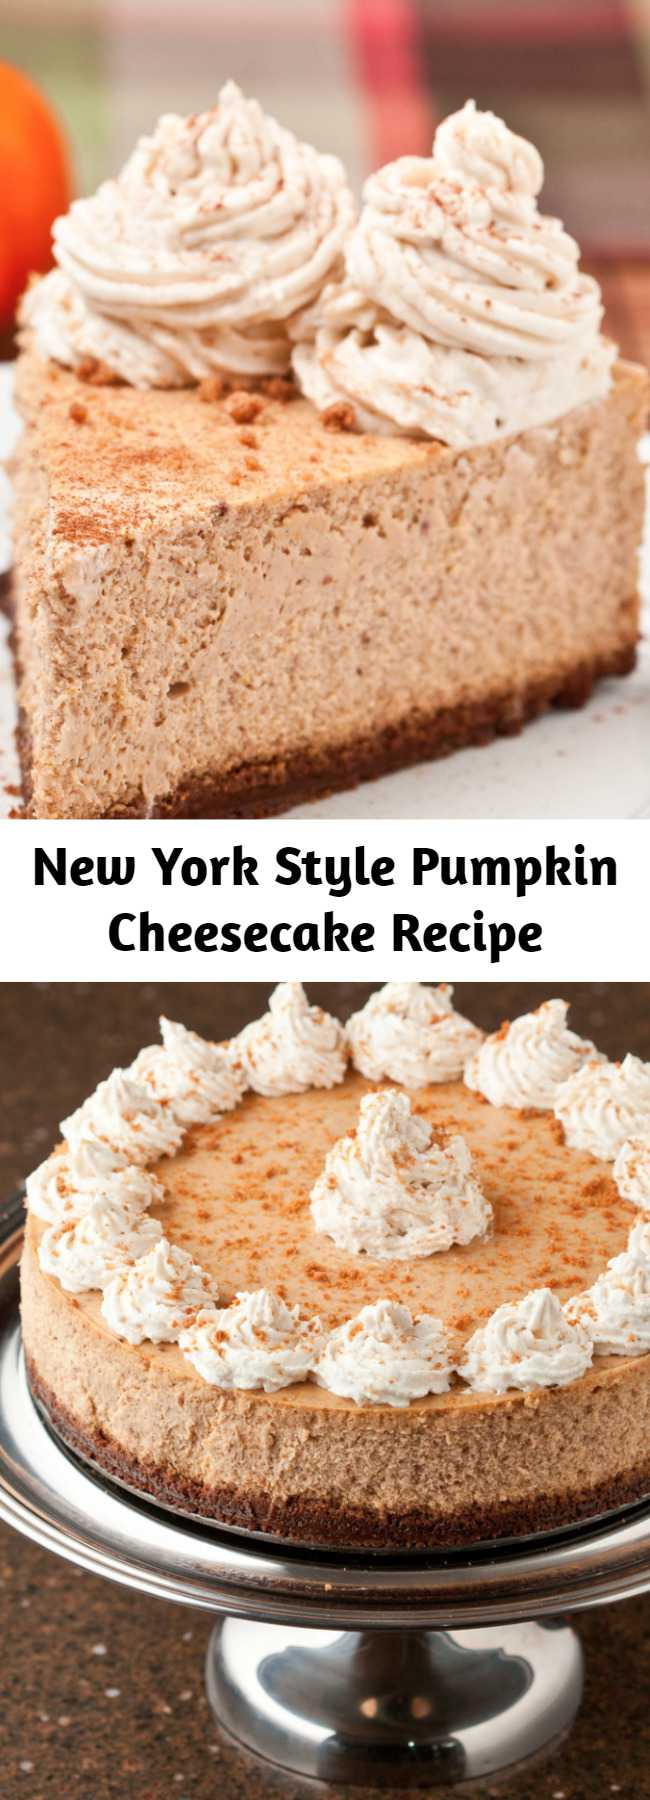 New York Style Pumpkin Cheesecake Recipe - Every bit as good or better than Cheesecake Factory's seasonal pumpkin cheesecake. NY style Pumpkin Cheesecake that's high, dense, and rich. The flavors of fall spices, pumpkin, and cream cheese meld together like no other. On top of a gingersnap crust. Seriously.